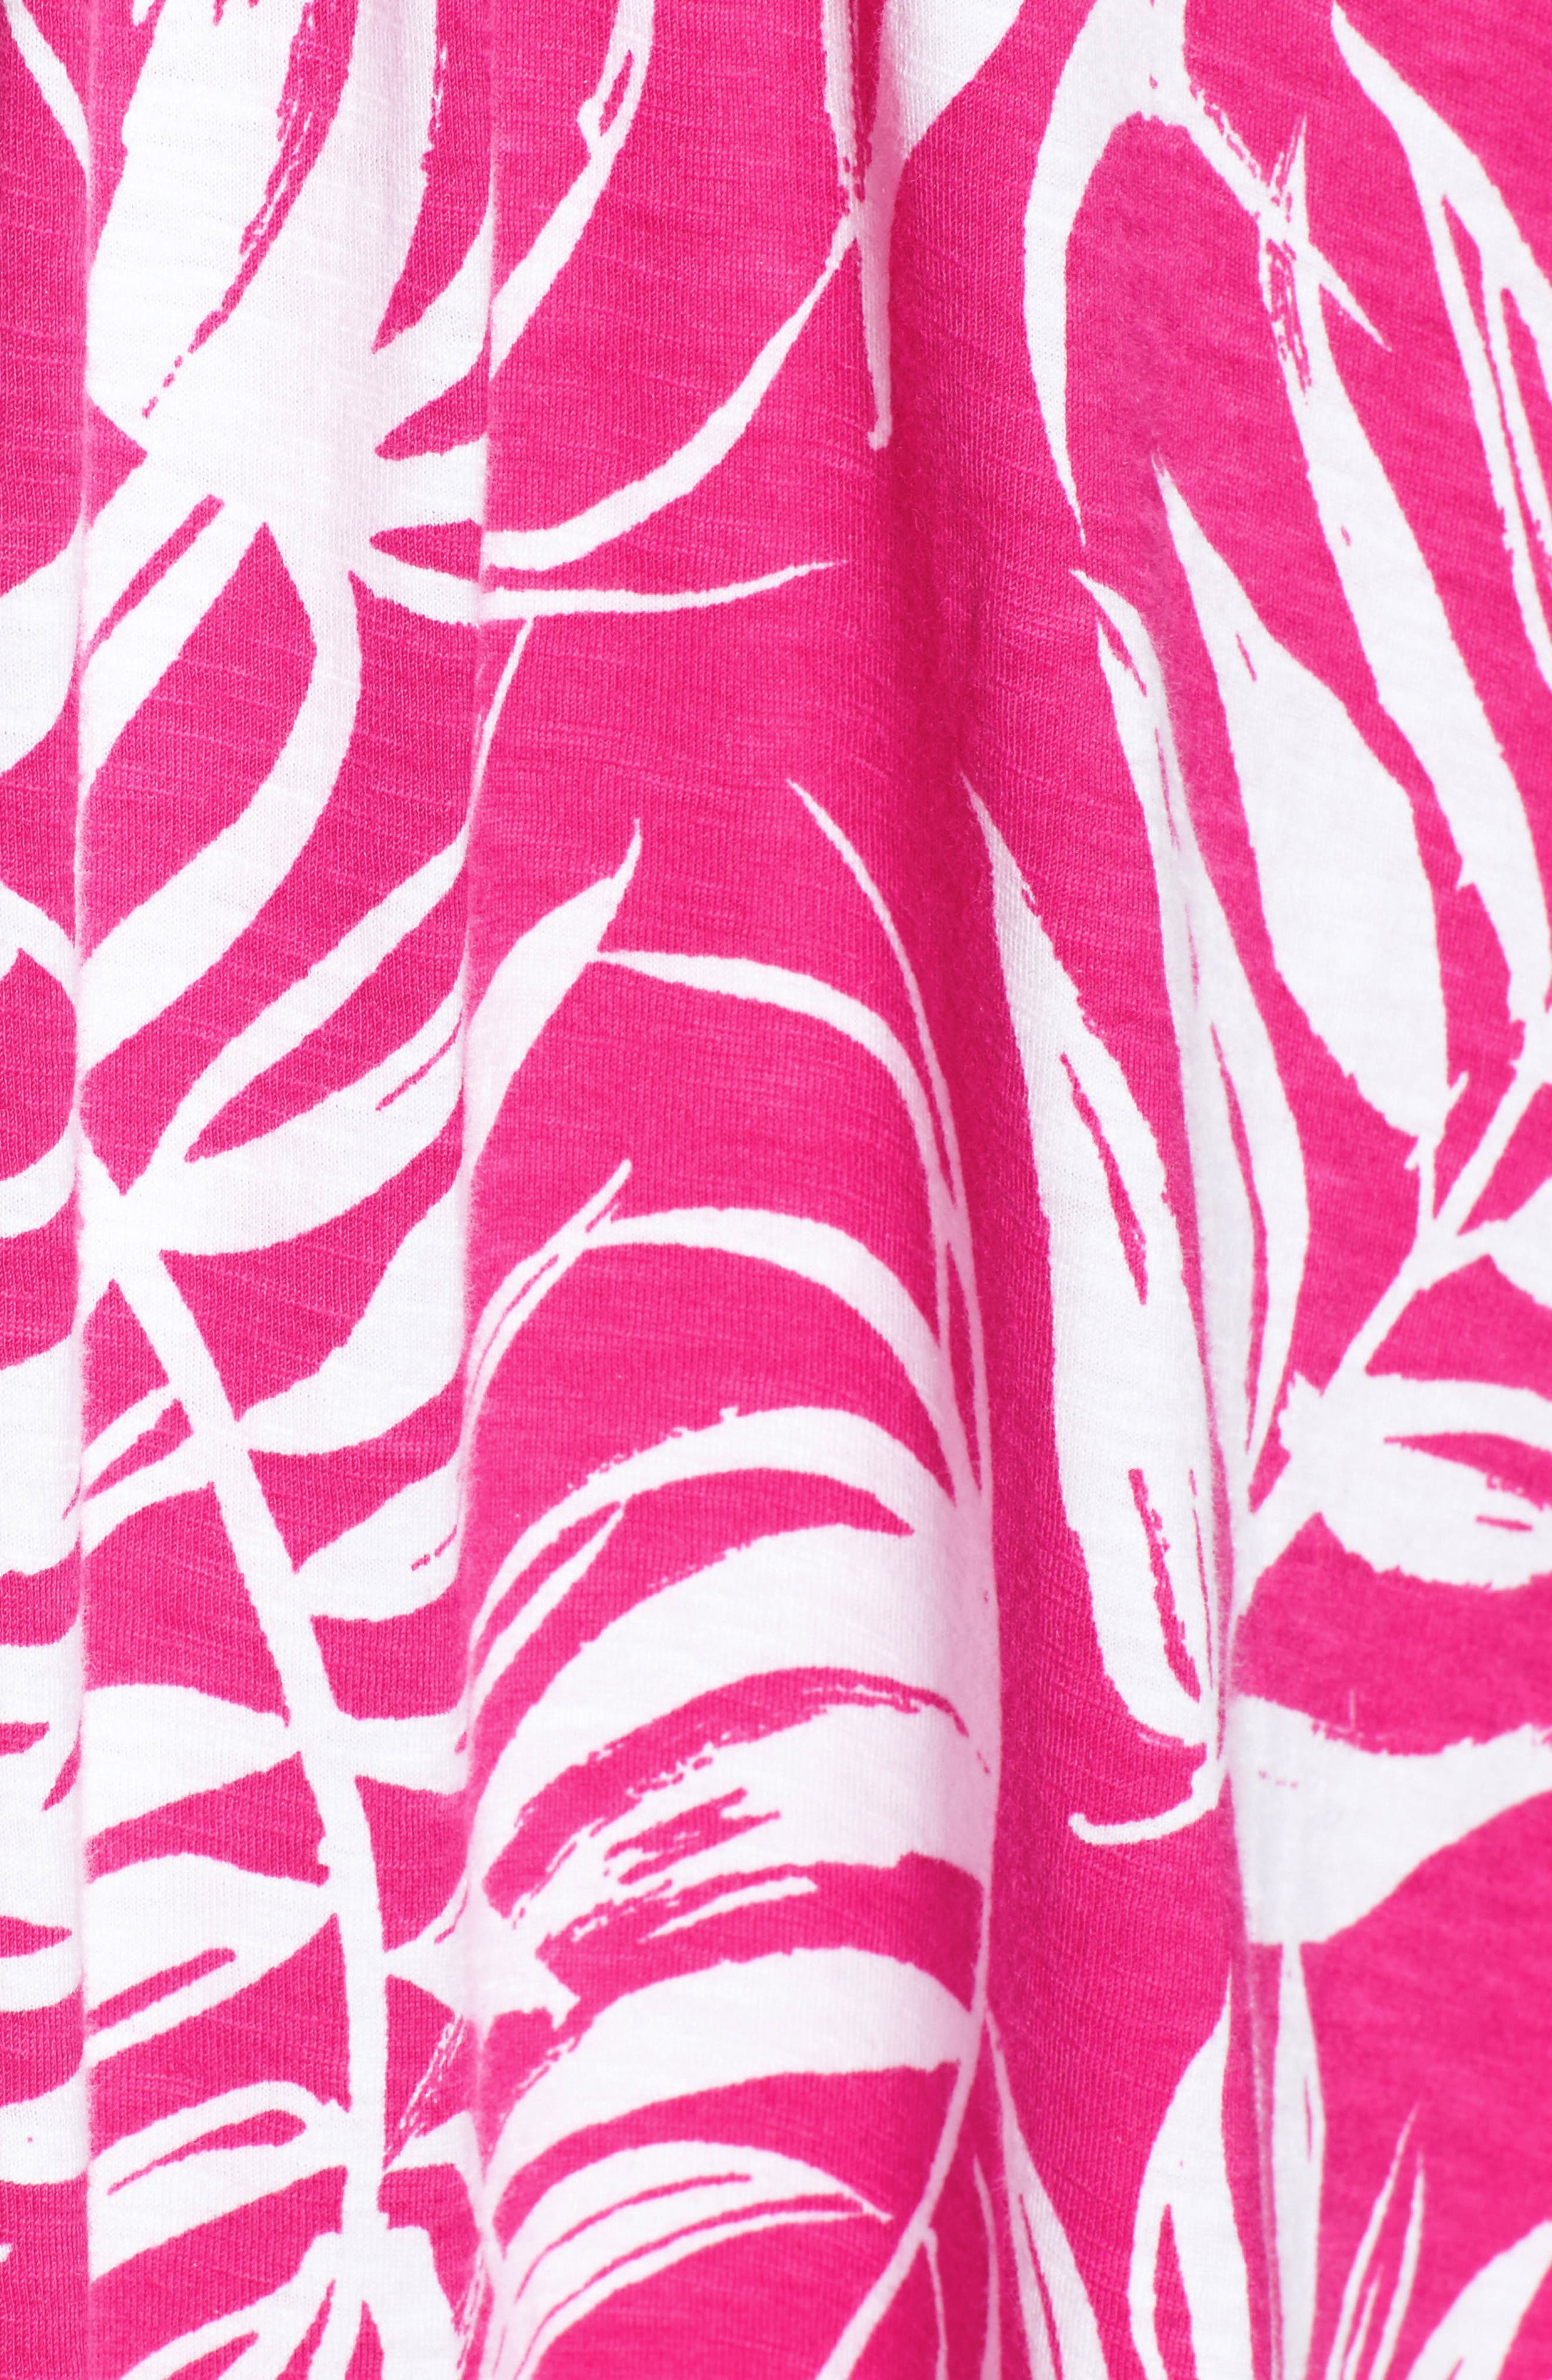 Fronds with Benefits Dress,                             Alternate thumbnail 5, color,                             Bright Blush